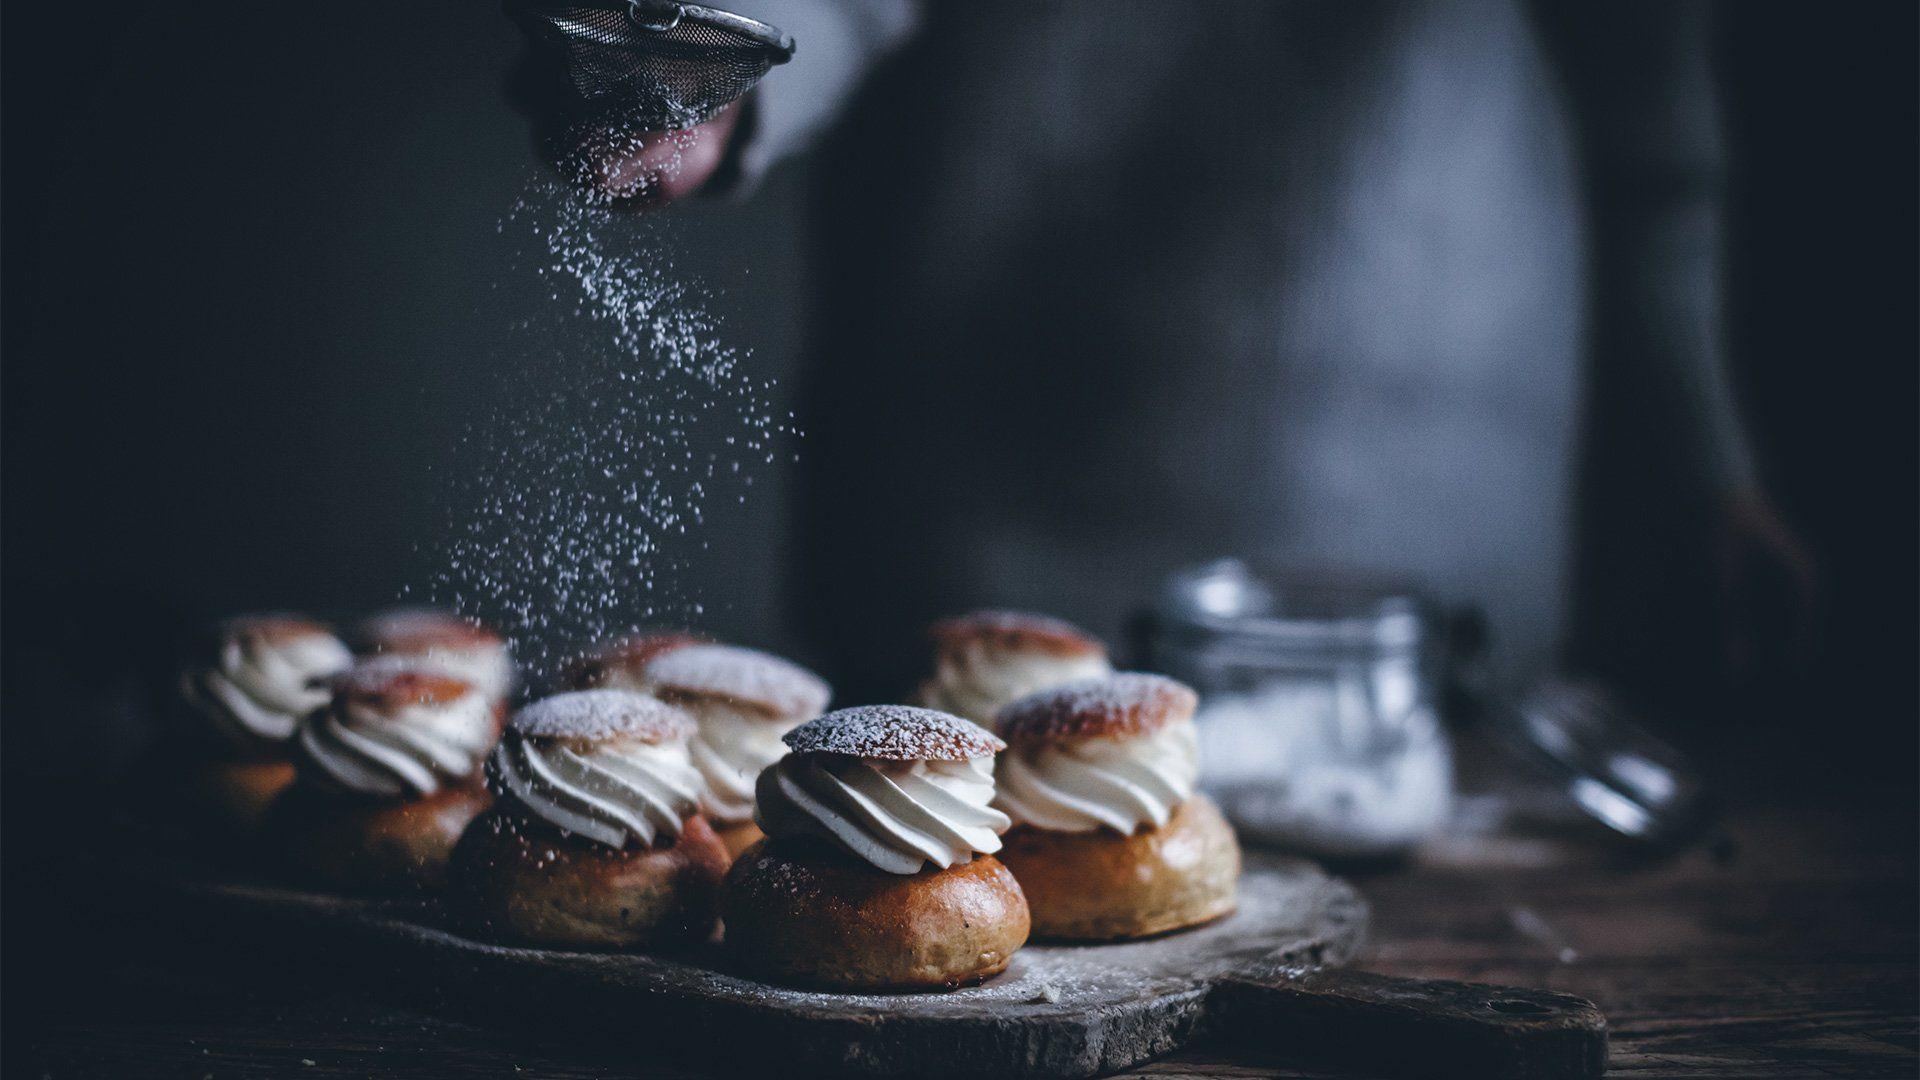 A person dusting icing sugar over pastries filled with piped cream.